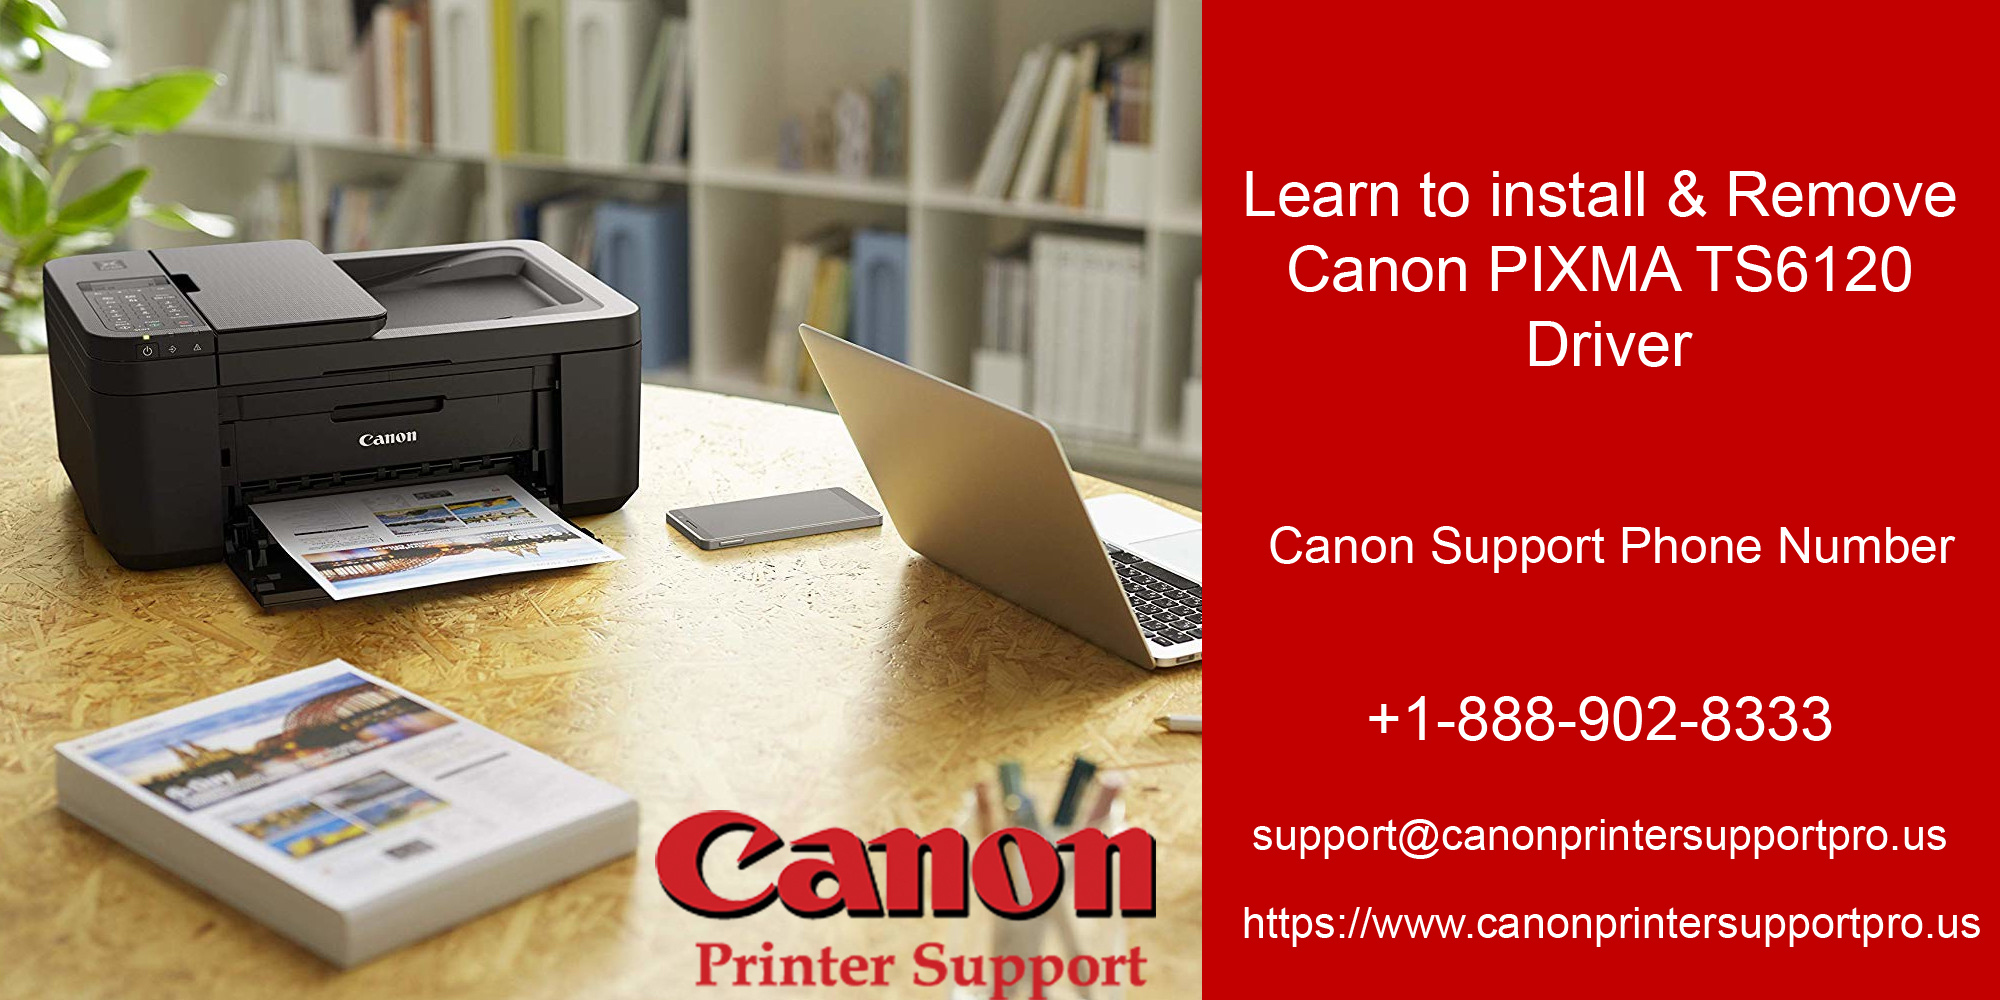 Learn to install and remove Canon PIXMA TS6120 Driver